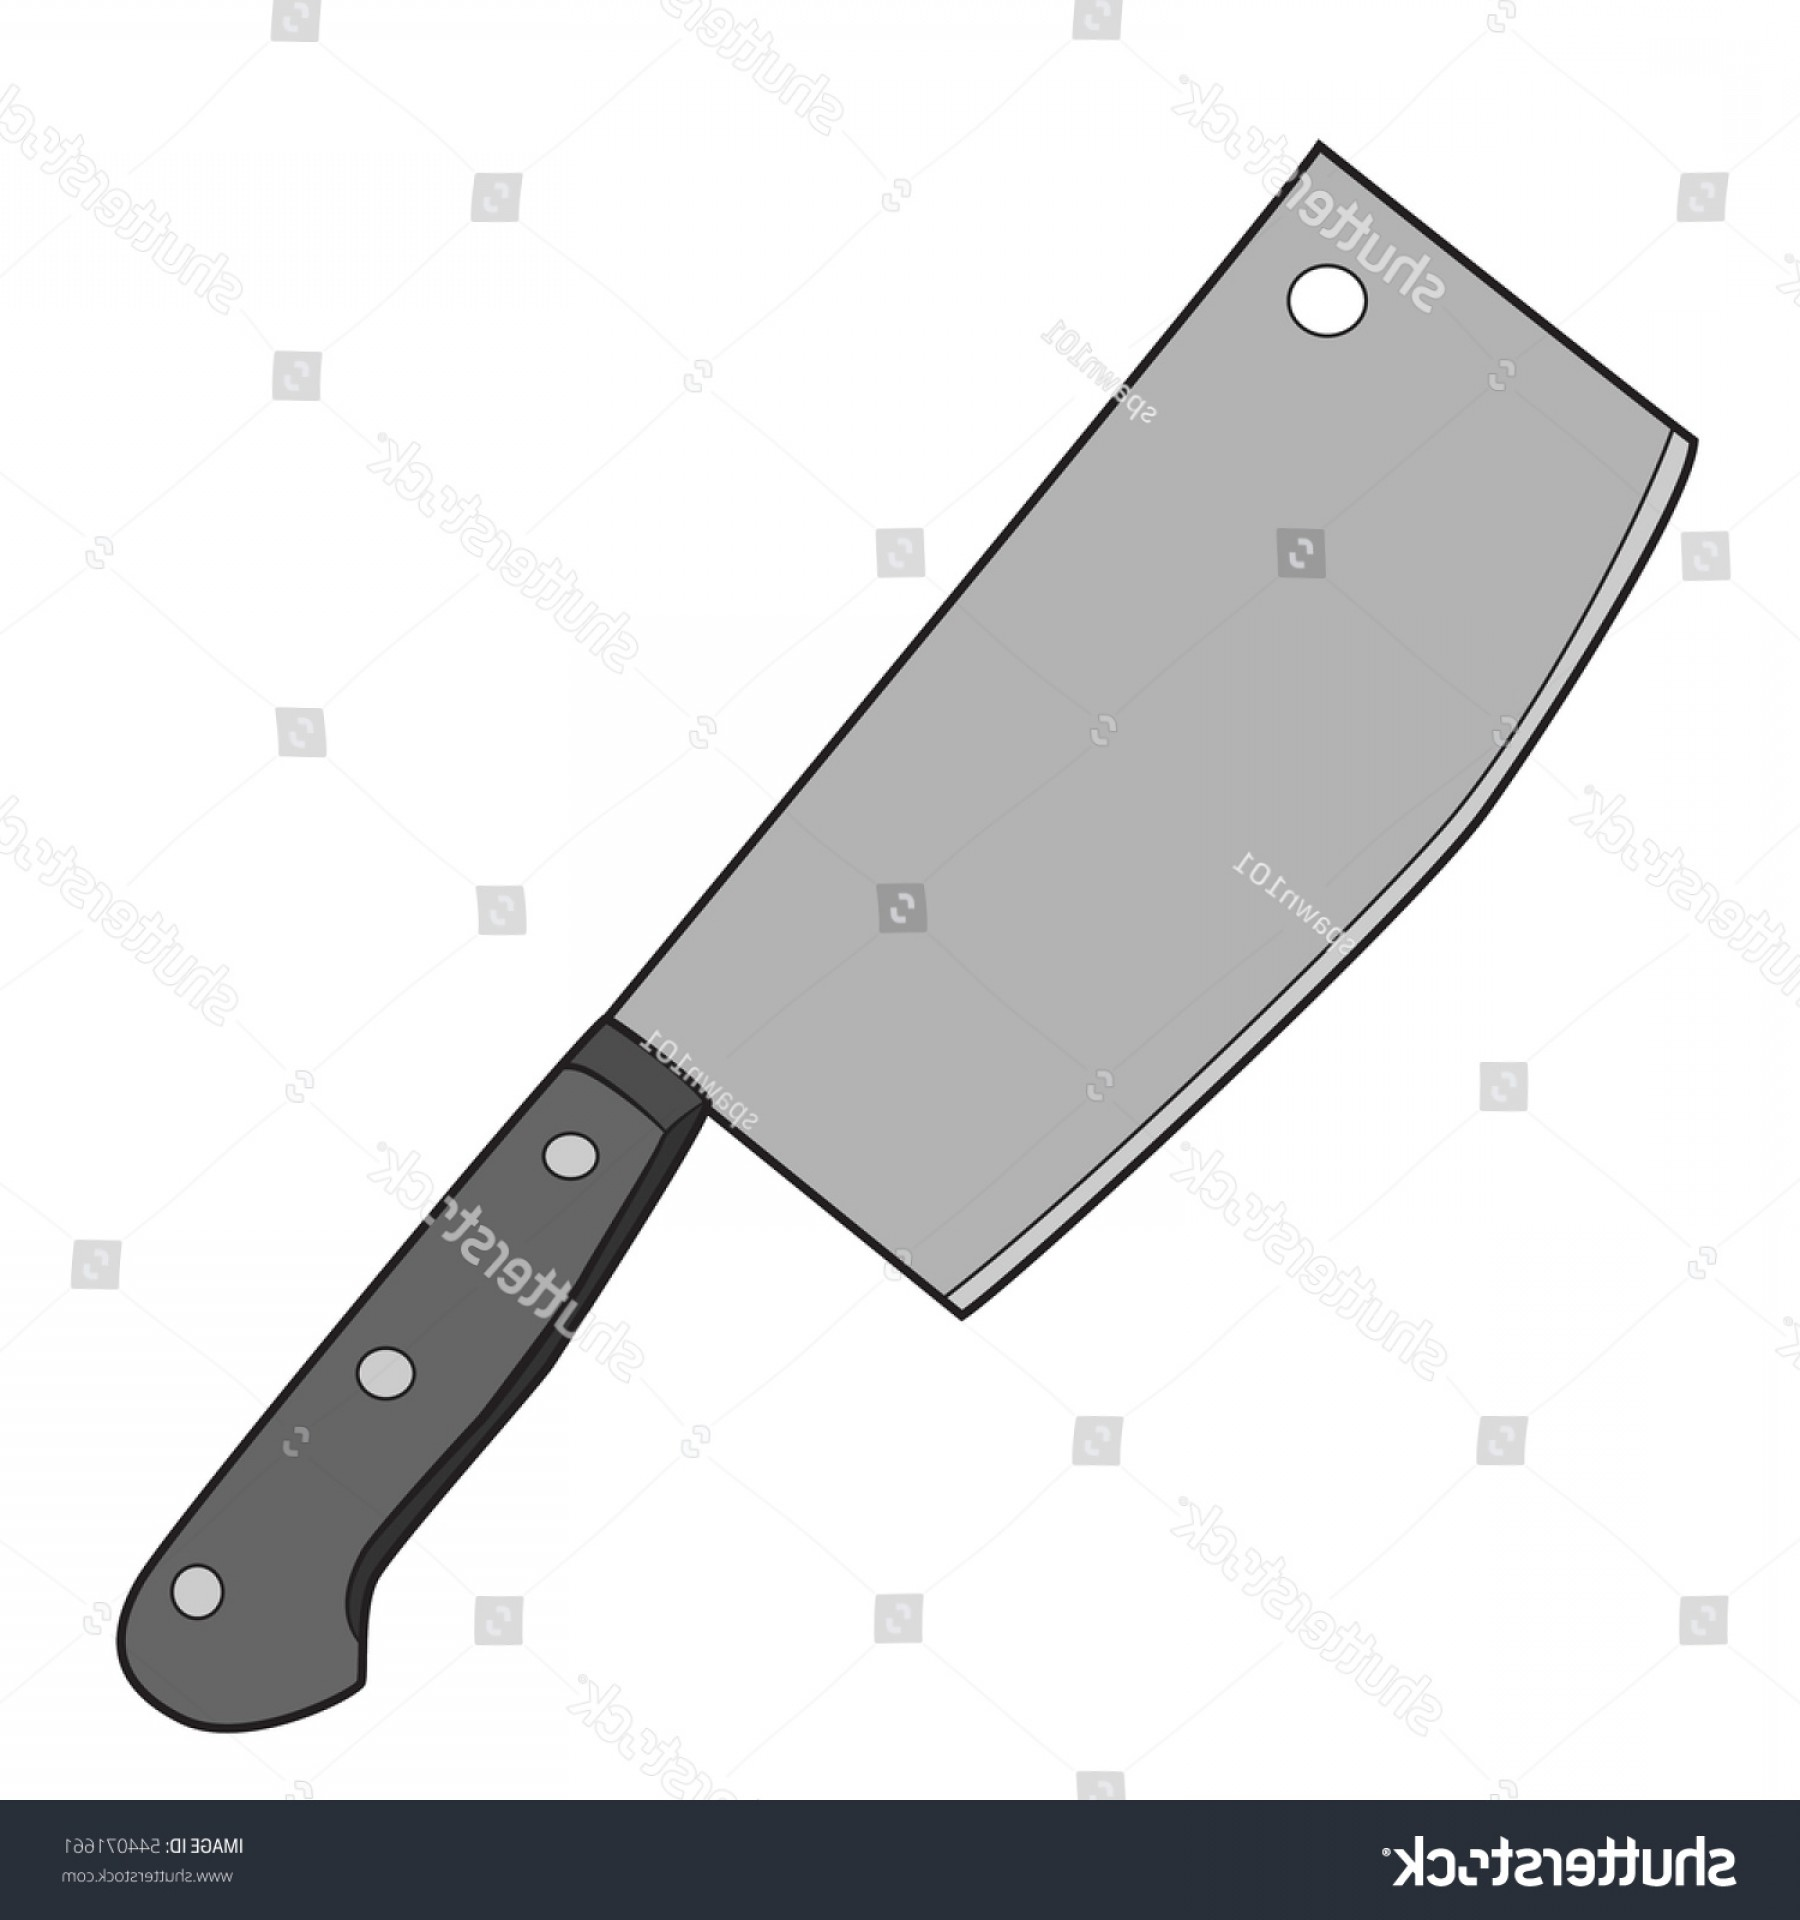 Butcher Knife Vector: Illustration Isolated Butcher Knife Cartoon Drawing